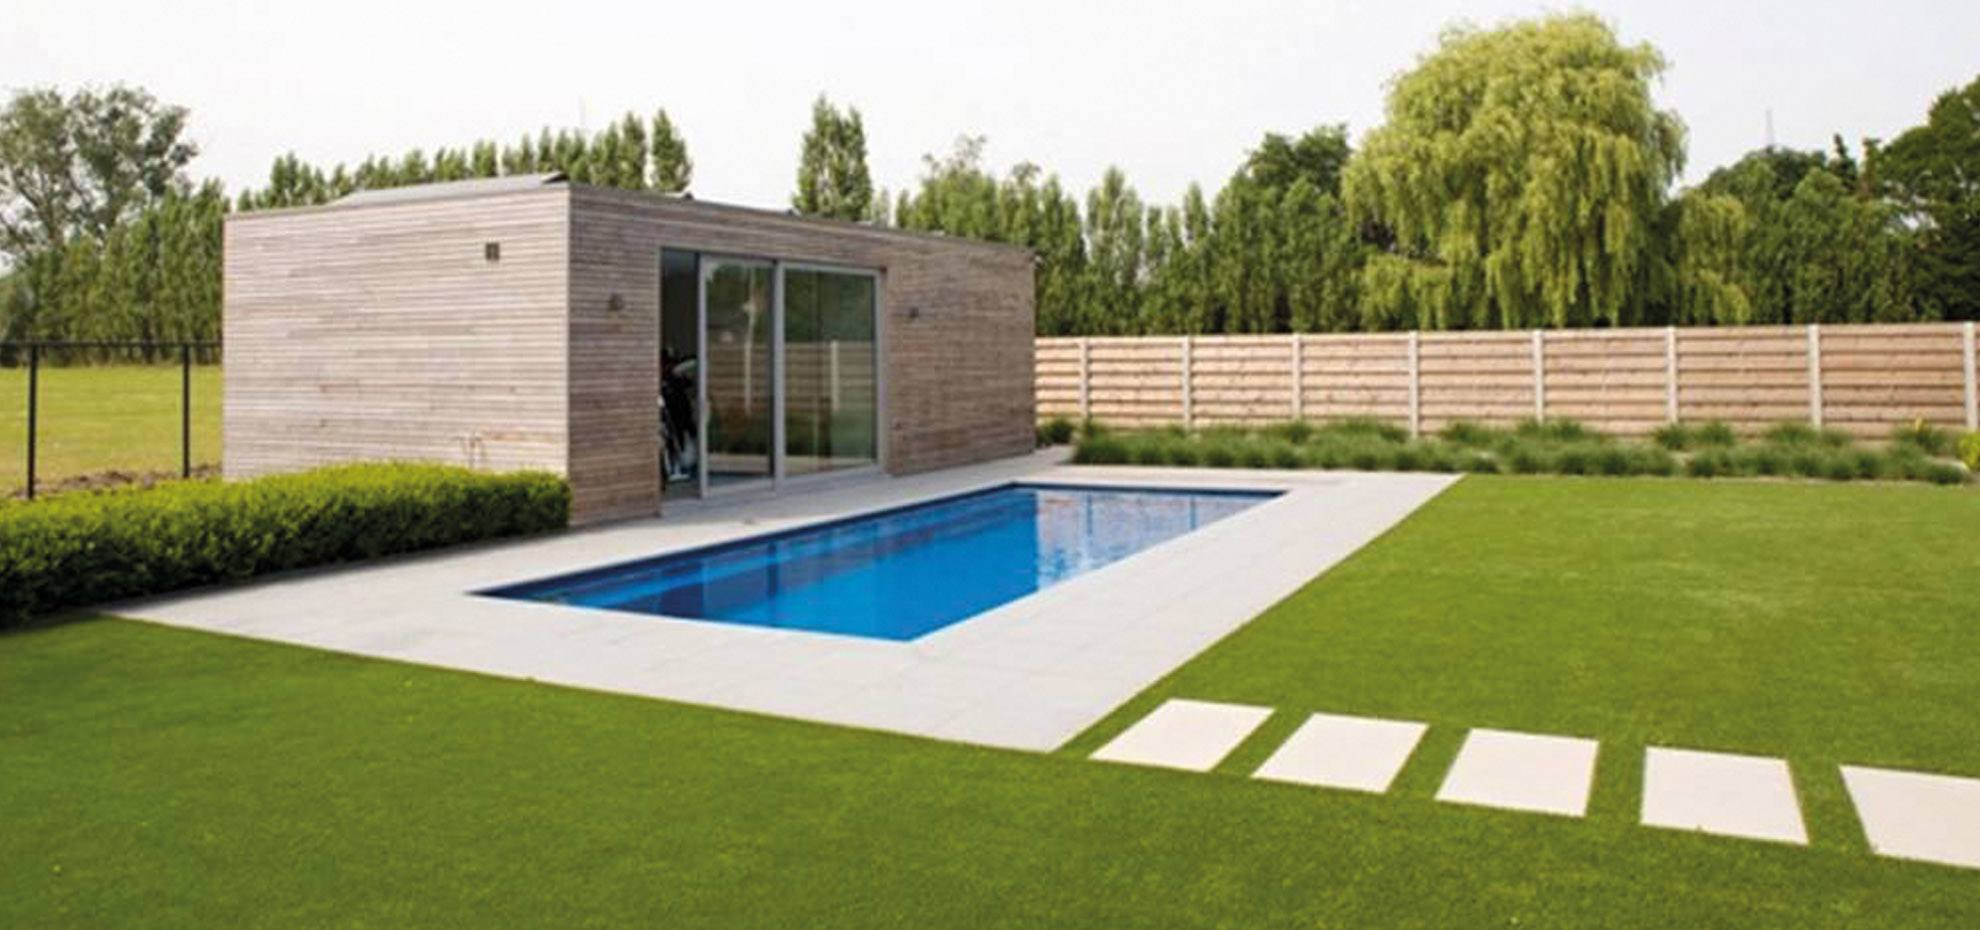 mistakes committed by less qualified pool builders